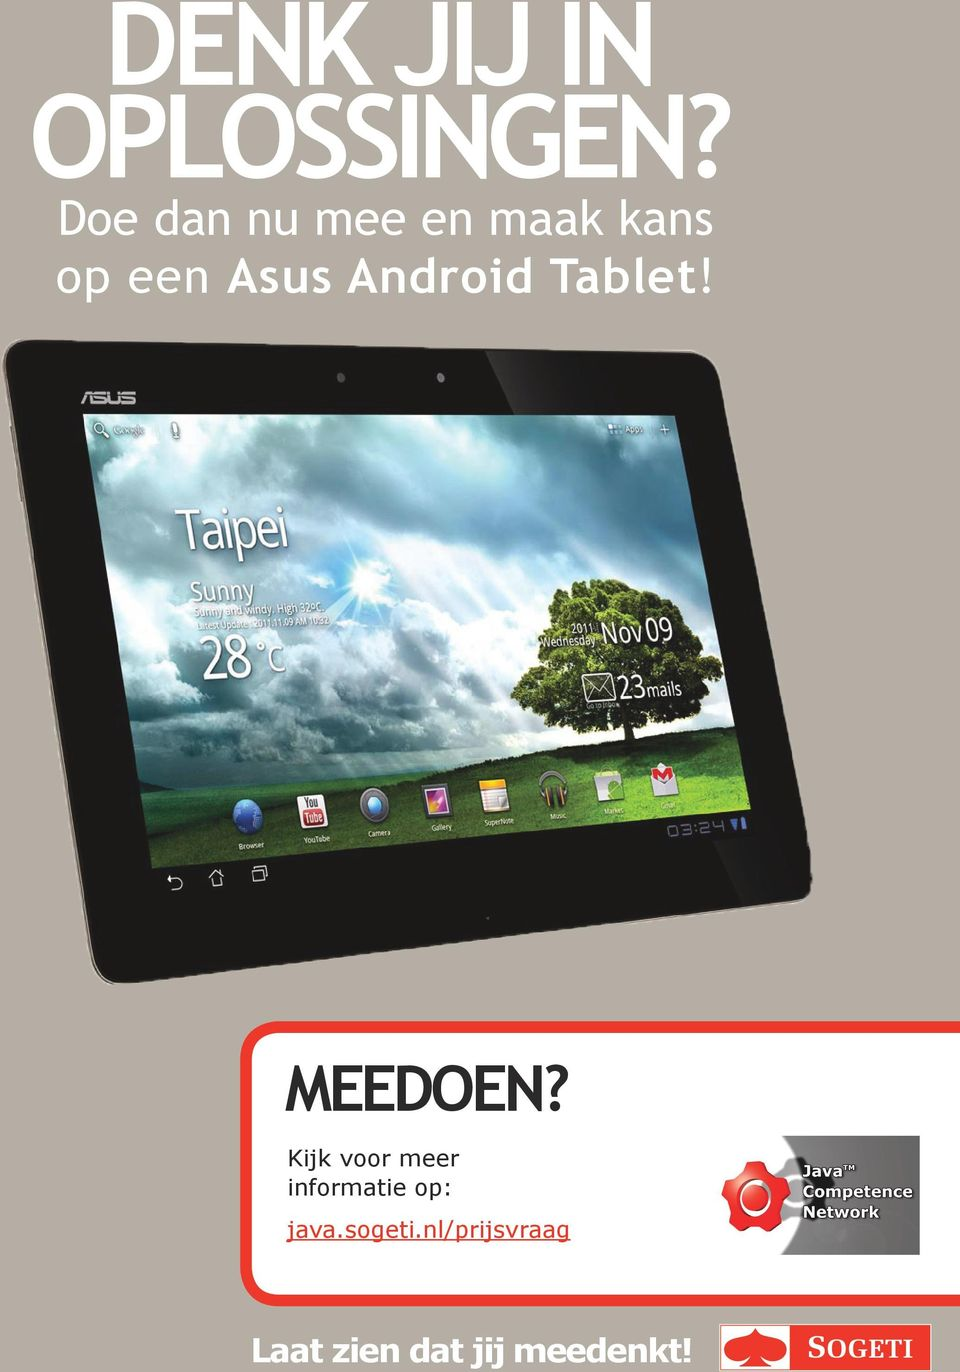 Android Tablet! MEEDOEN?